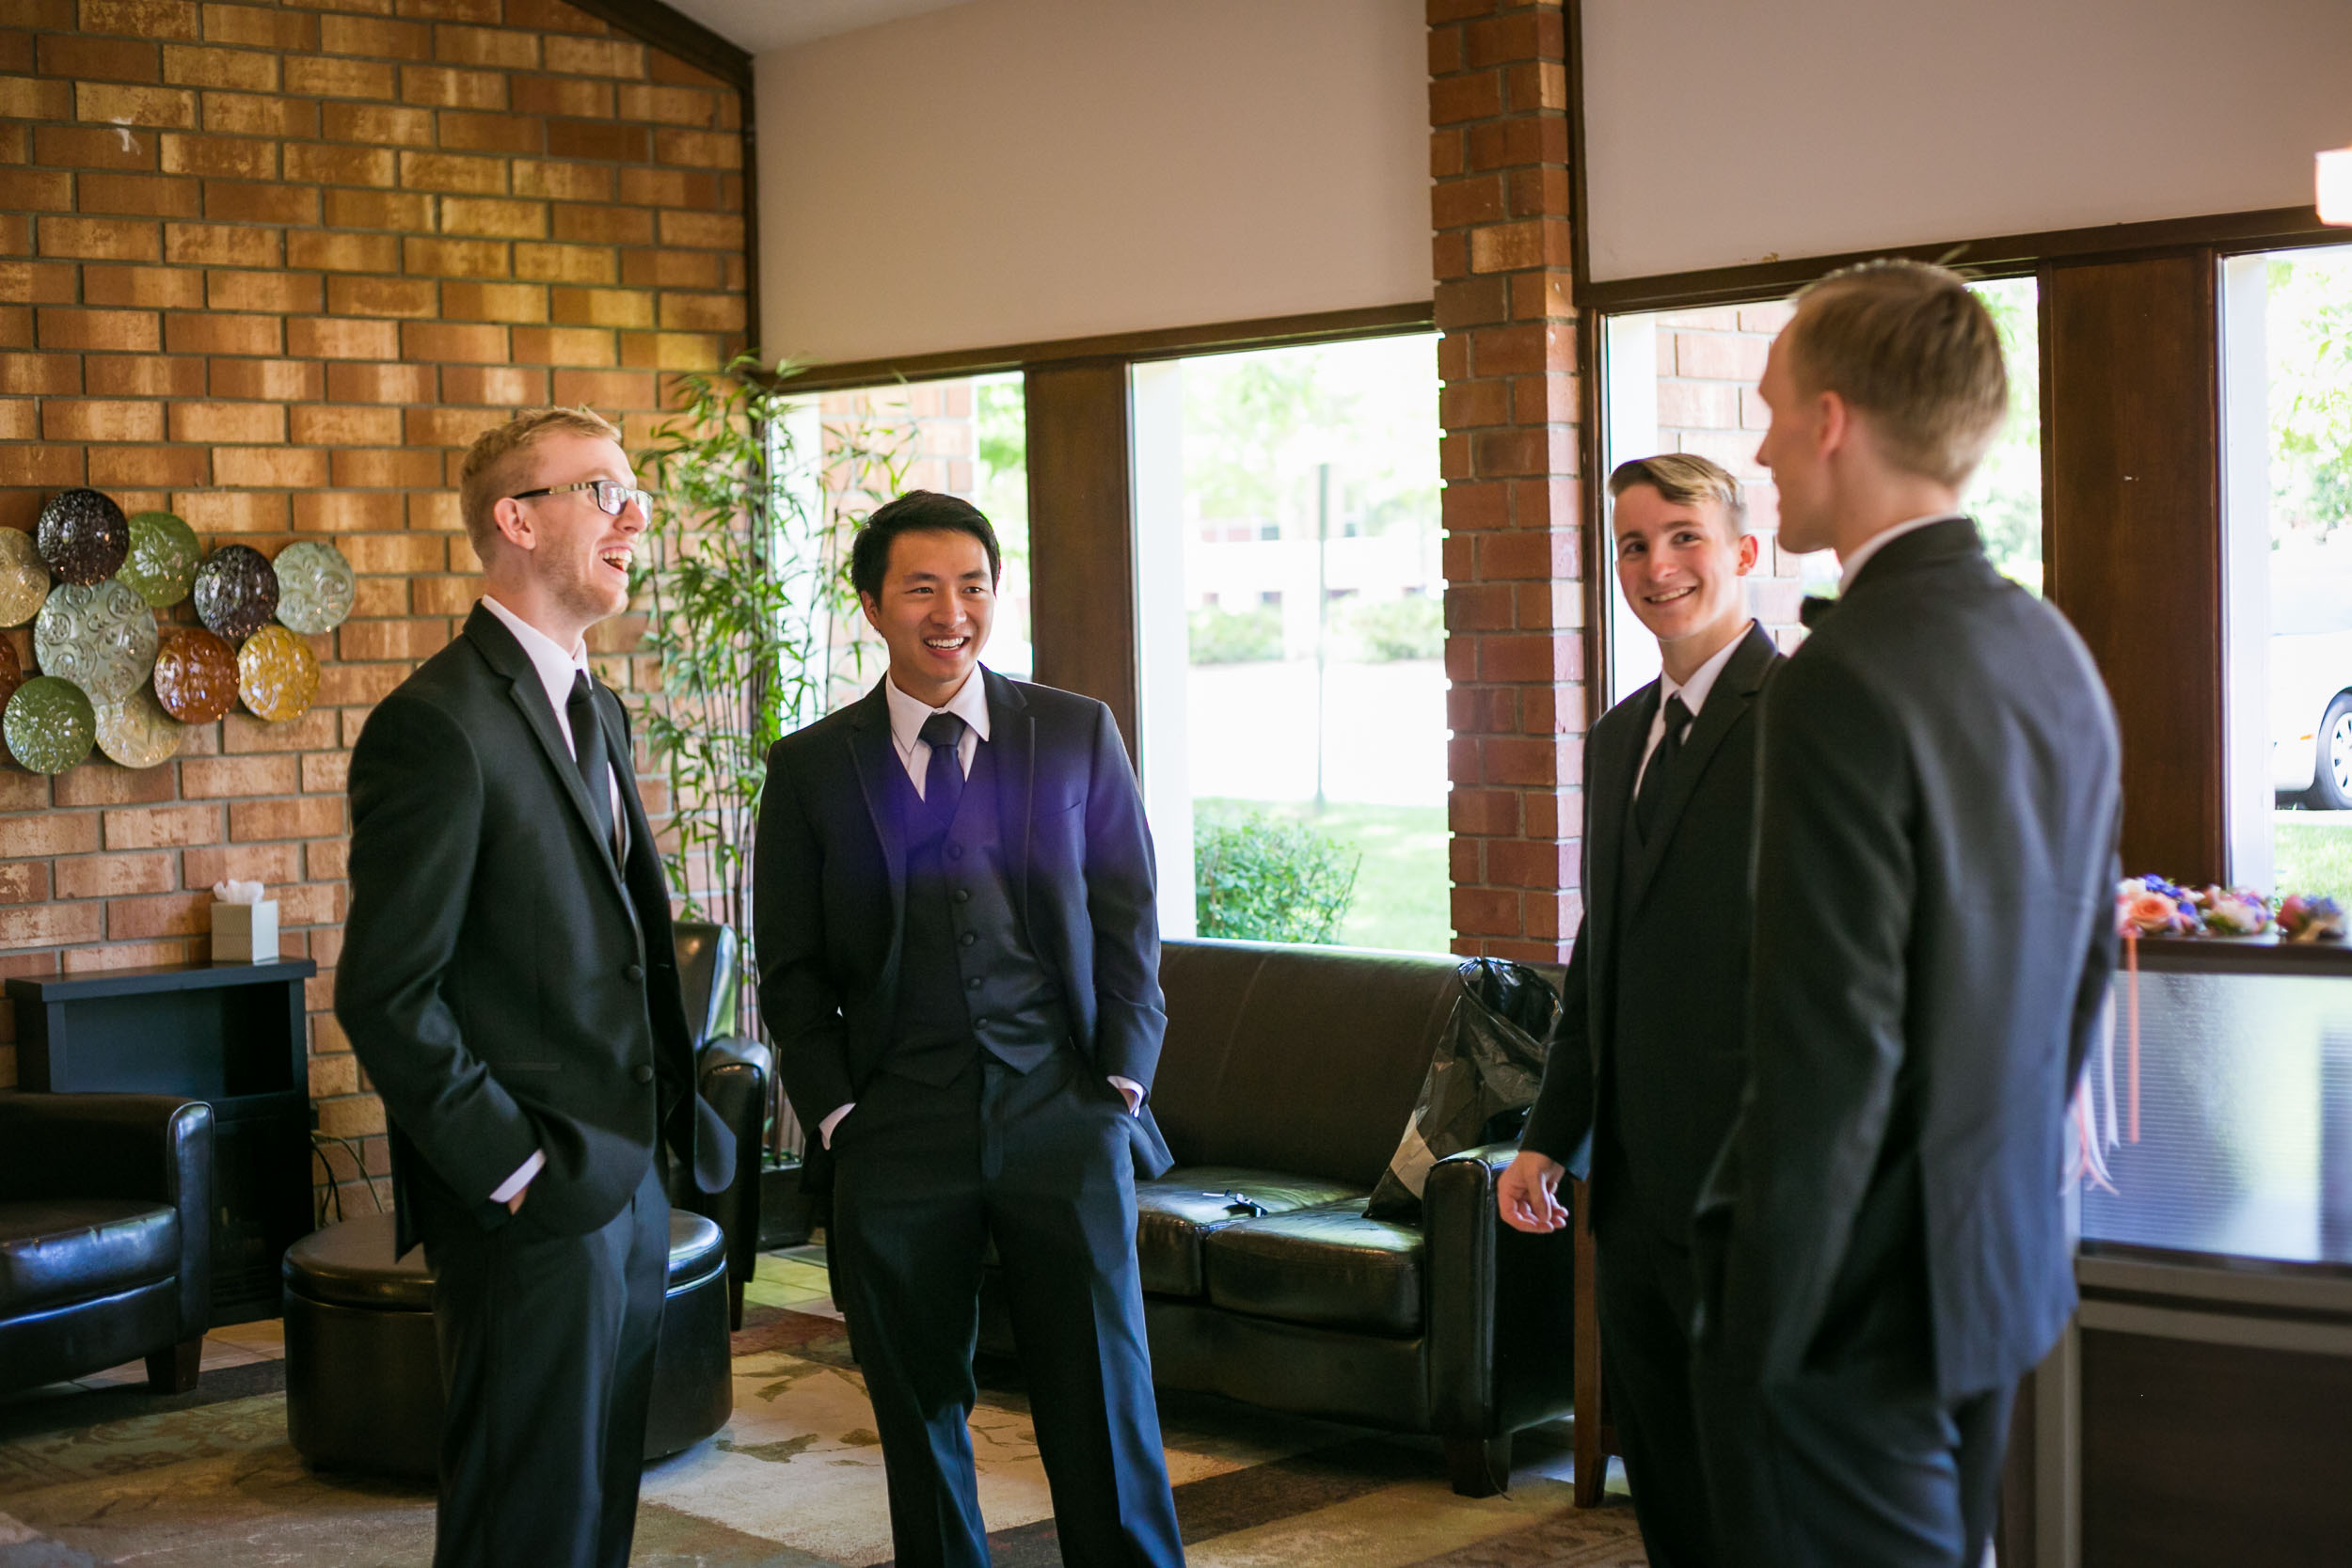 Raleigh Wedding Photographer | G. Lin Photography | Groomsmen standing in lobby and laughing